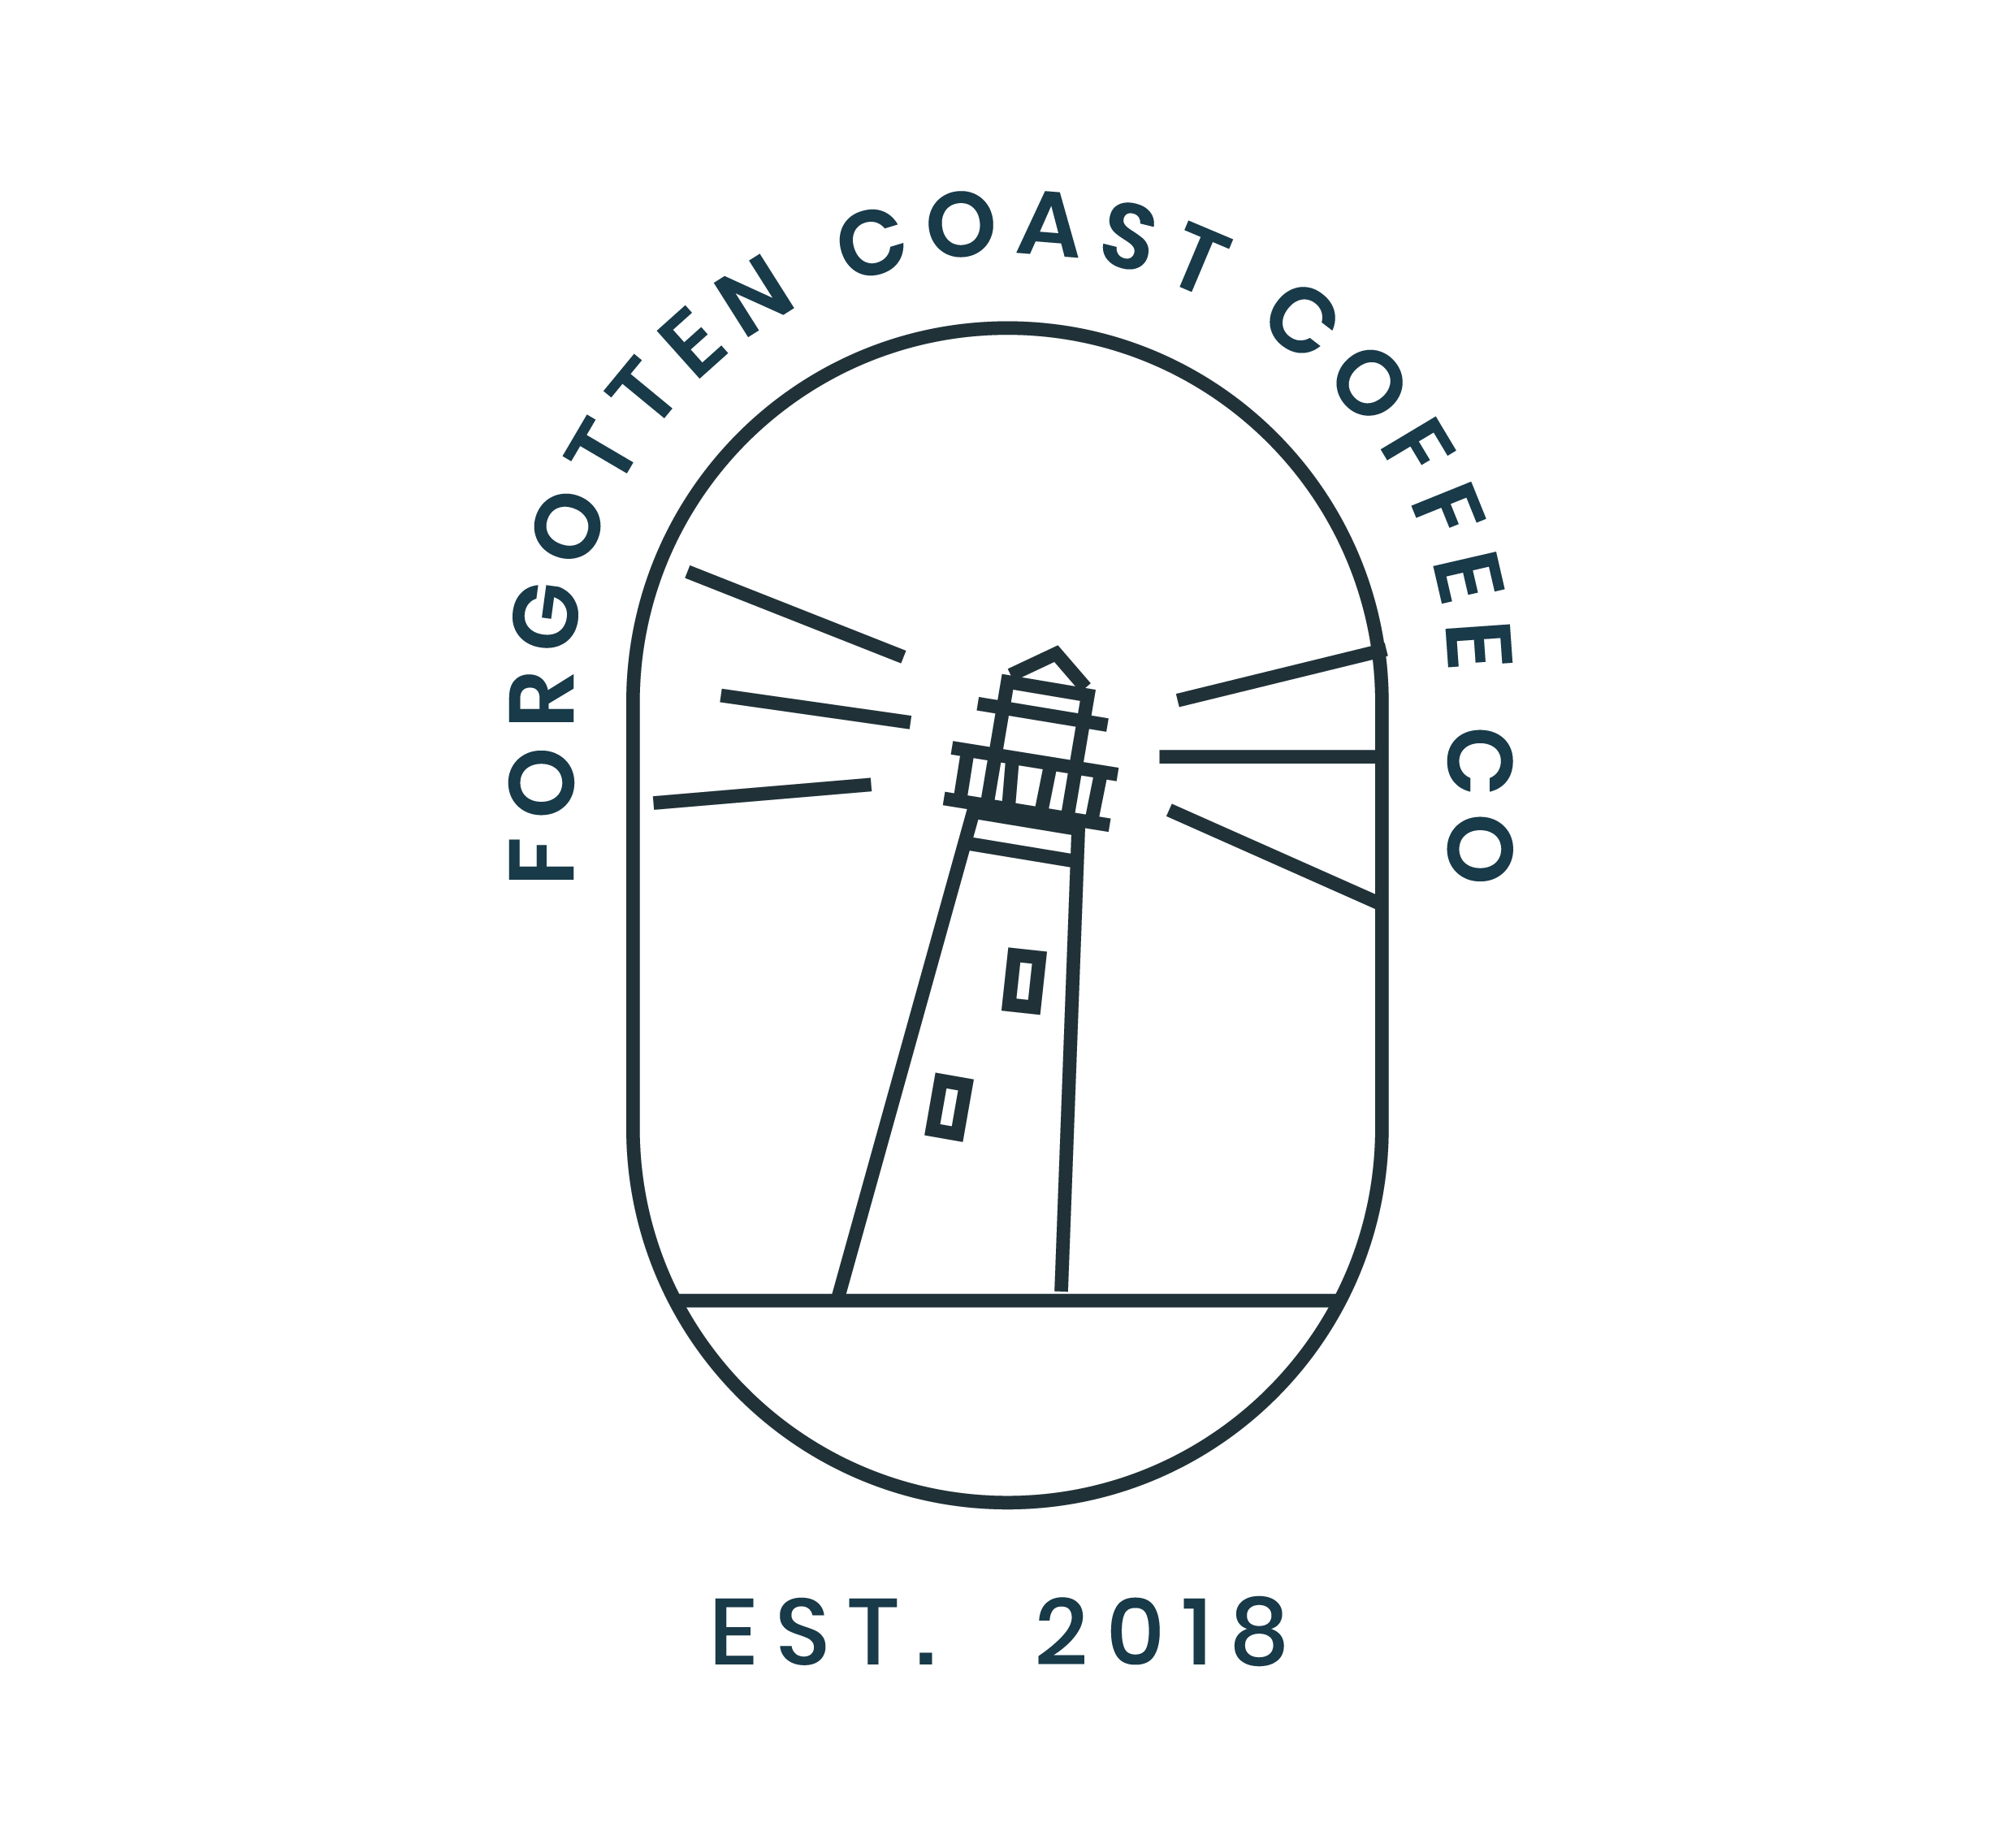 forgotten coast coffee